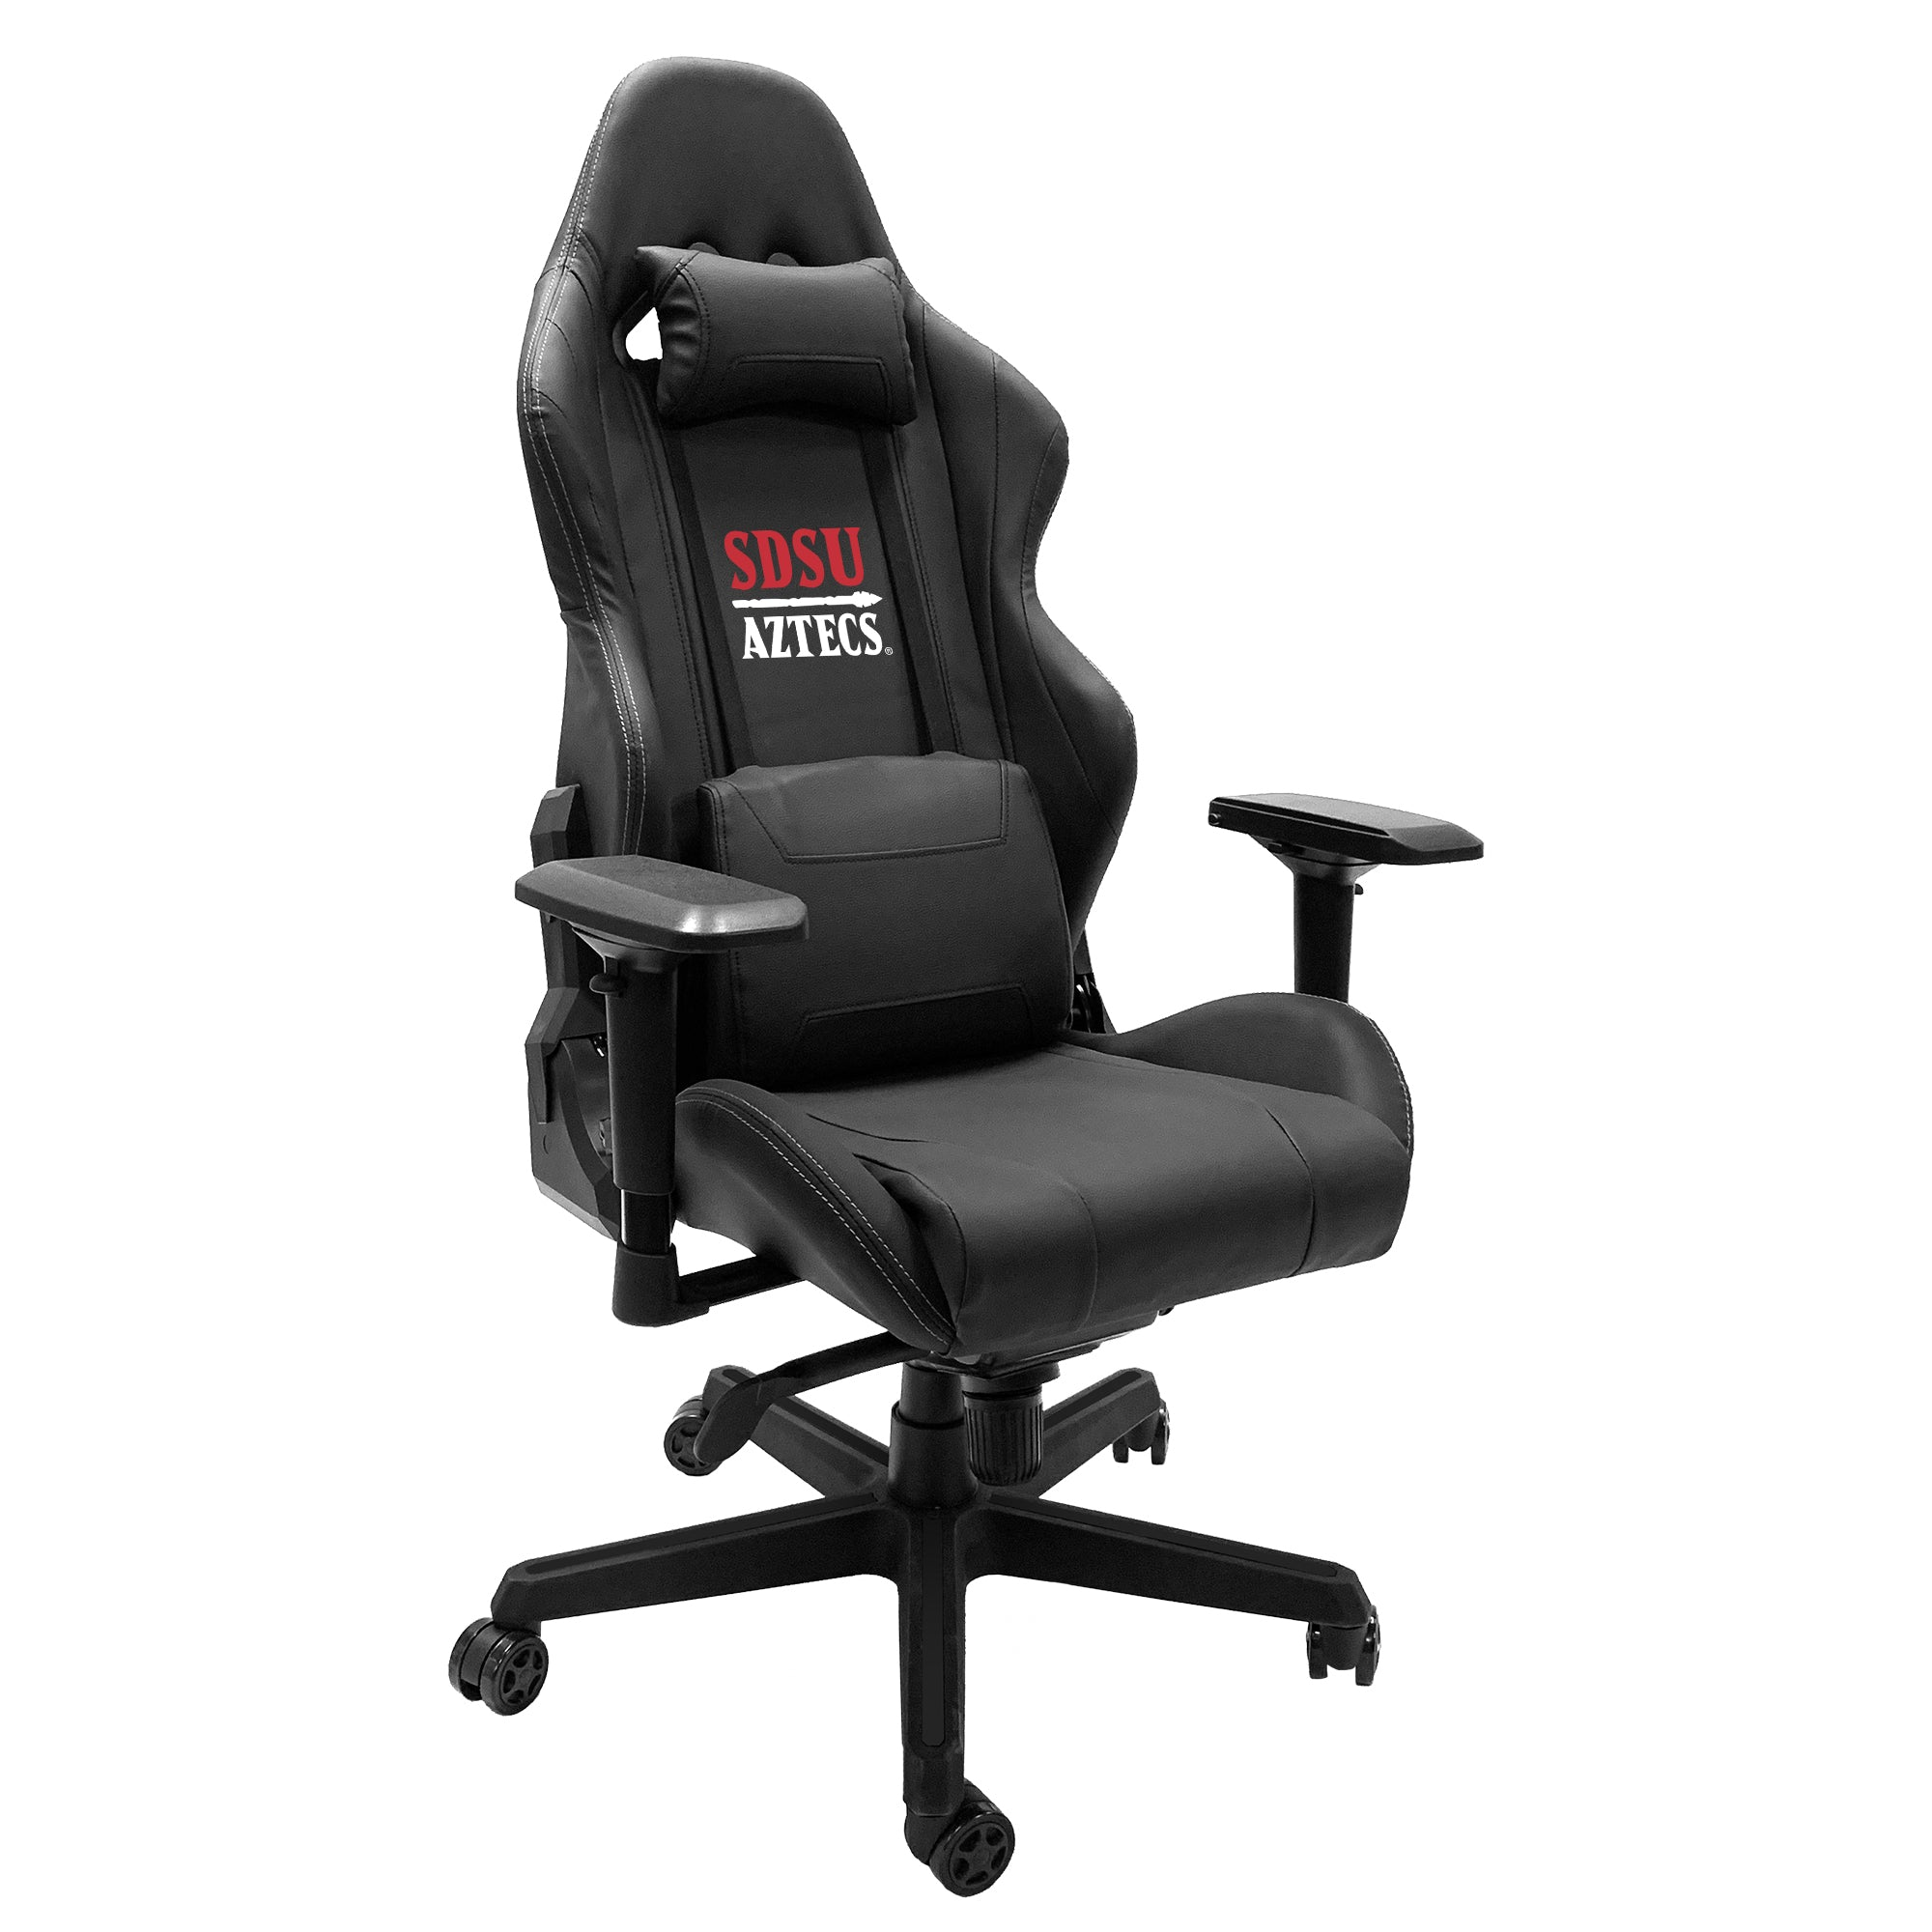 Xpression Gaming Chair with San Diego State Secondary